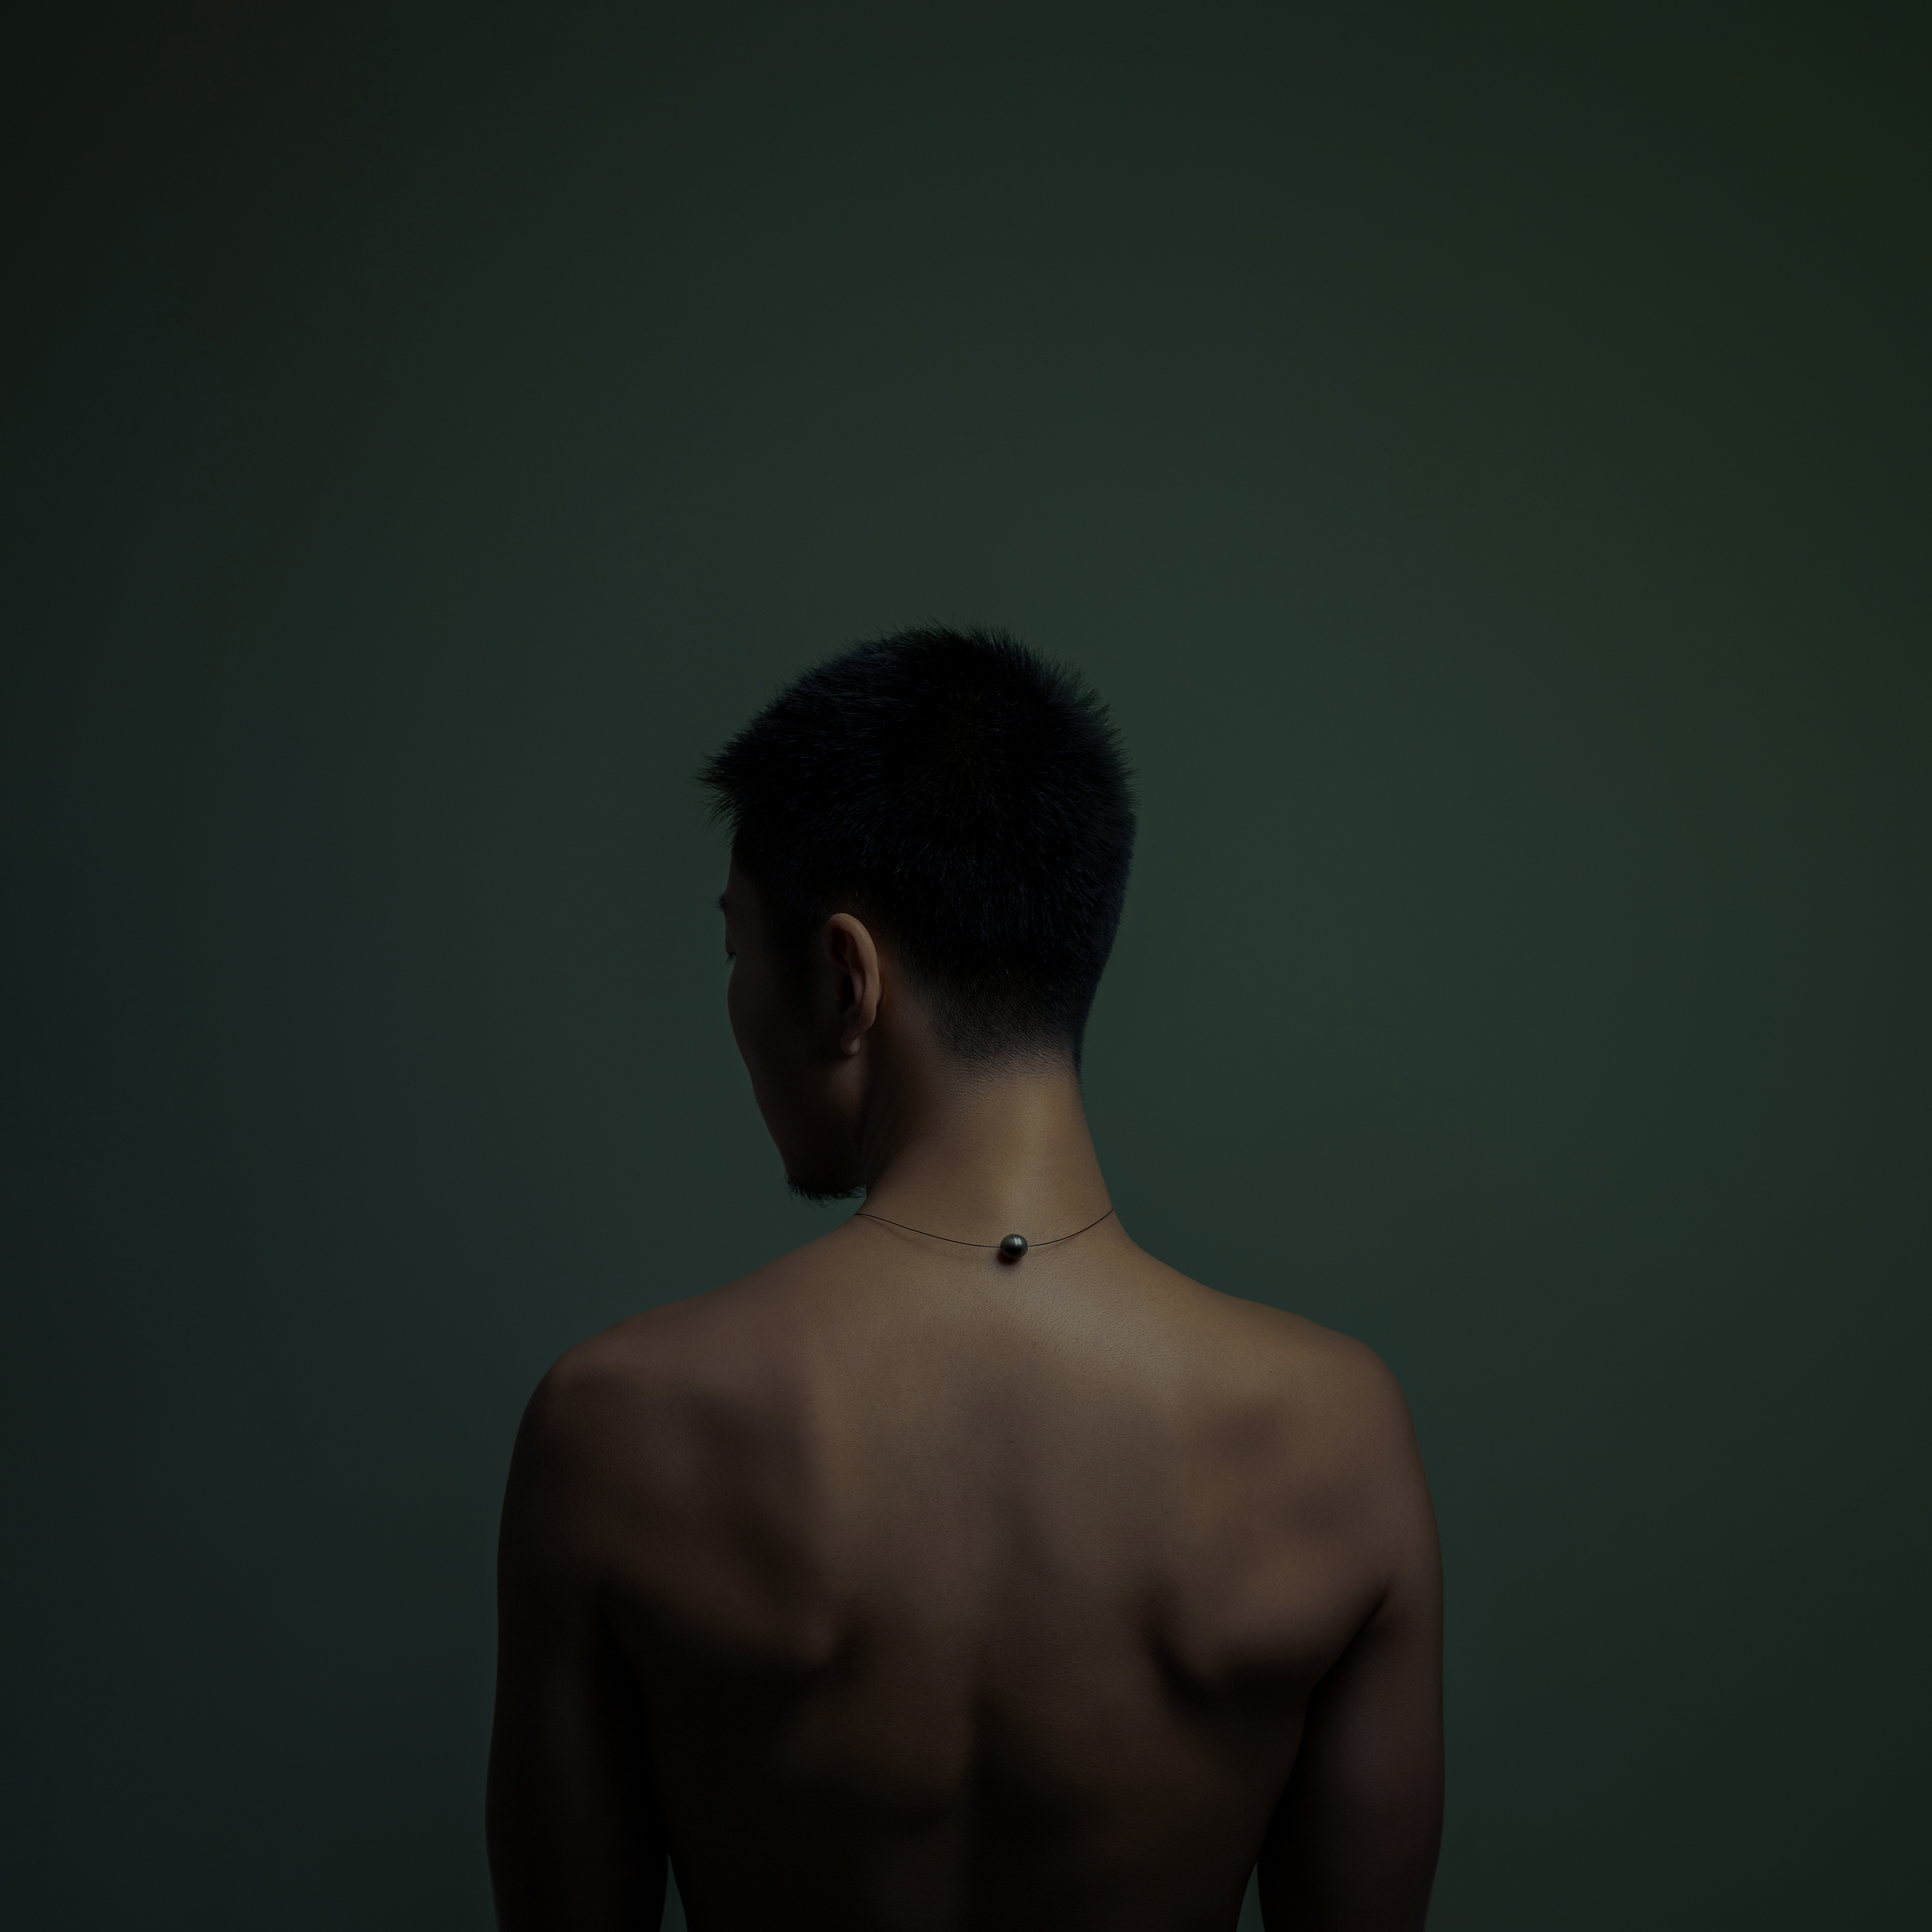 The back of a man with a pearl necklace